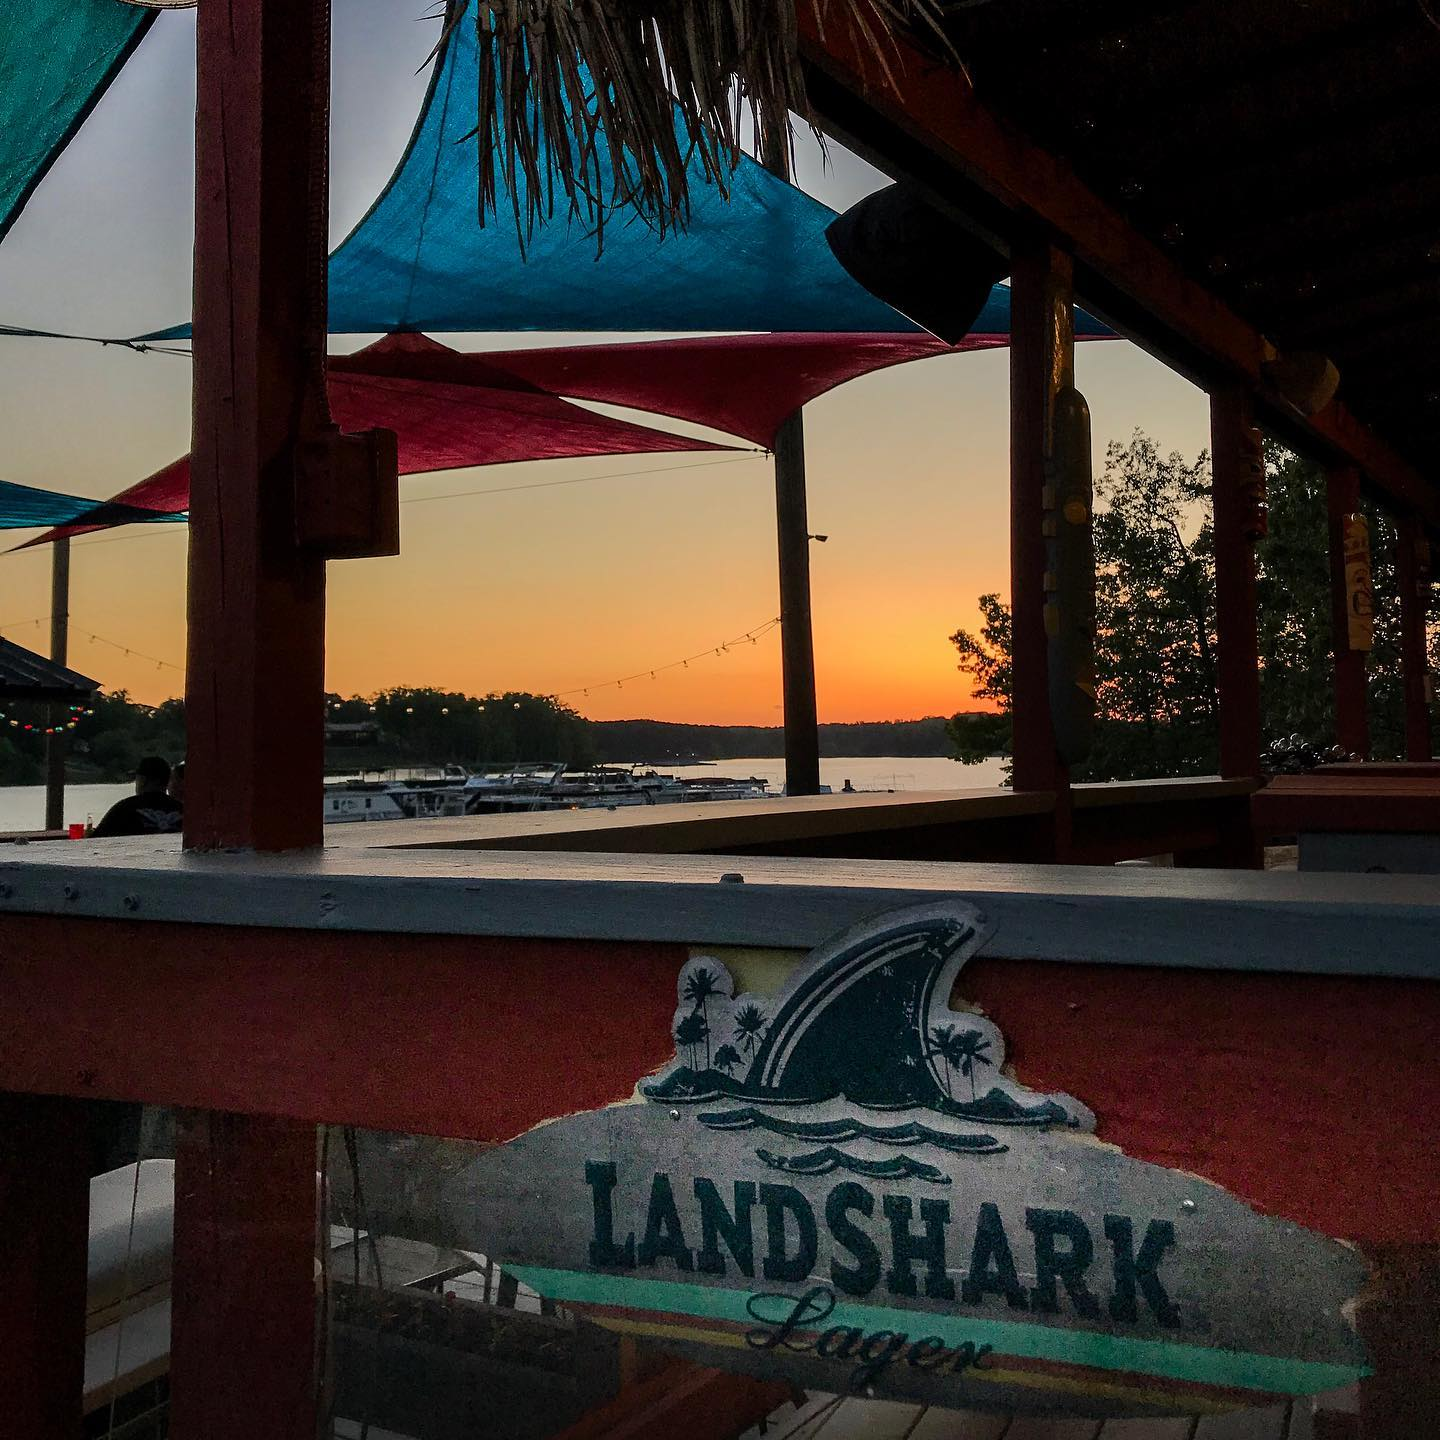 Landshark Lager sign on a banister with a view of a sunset over a lake